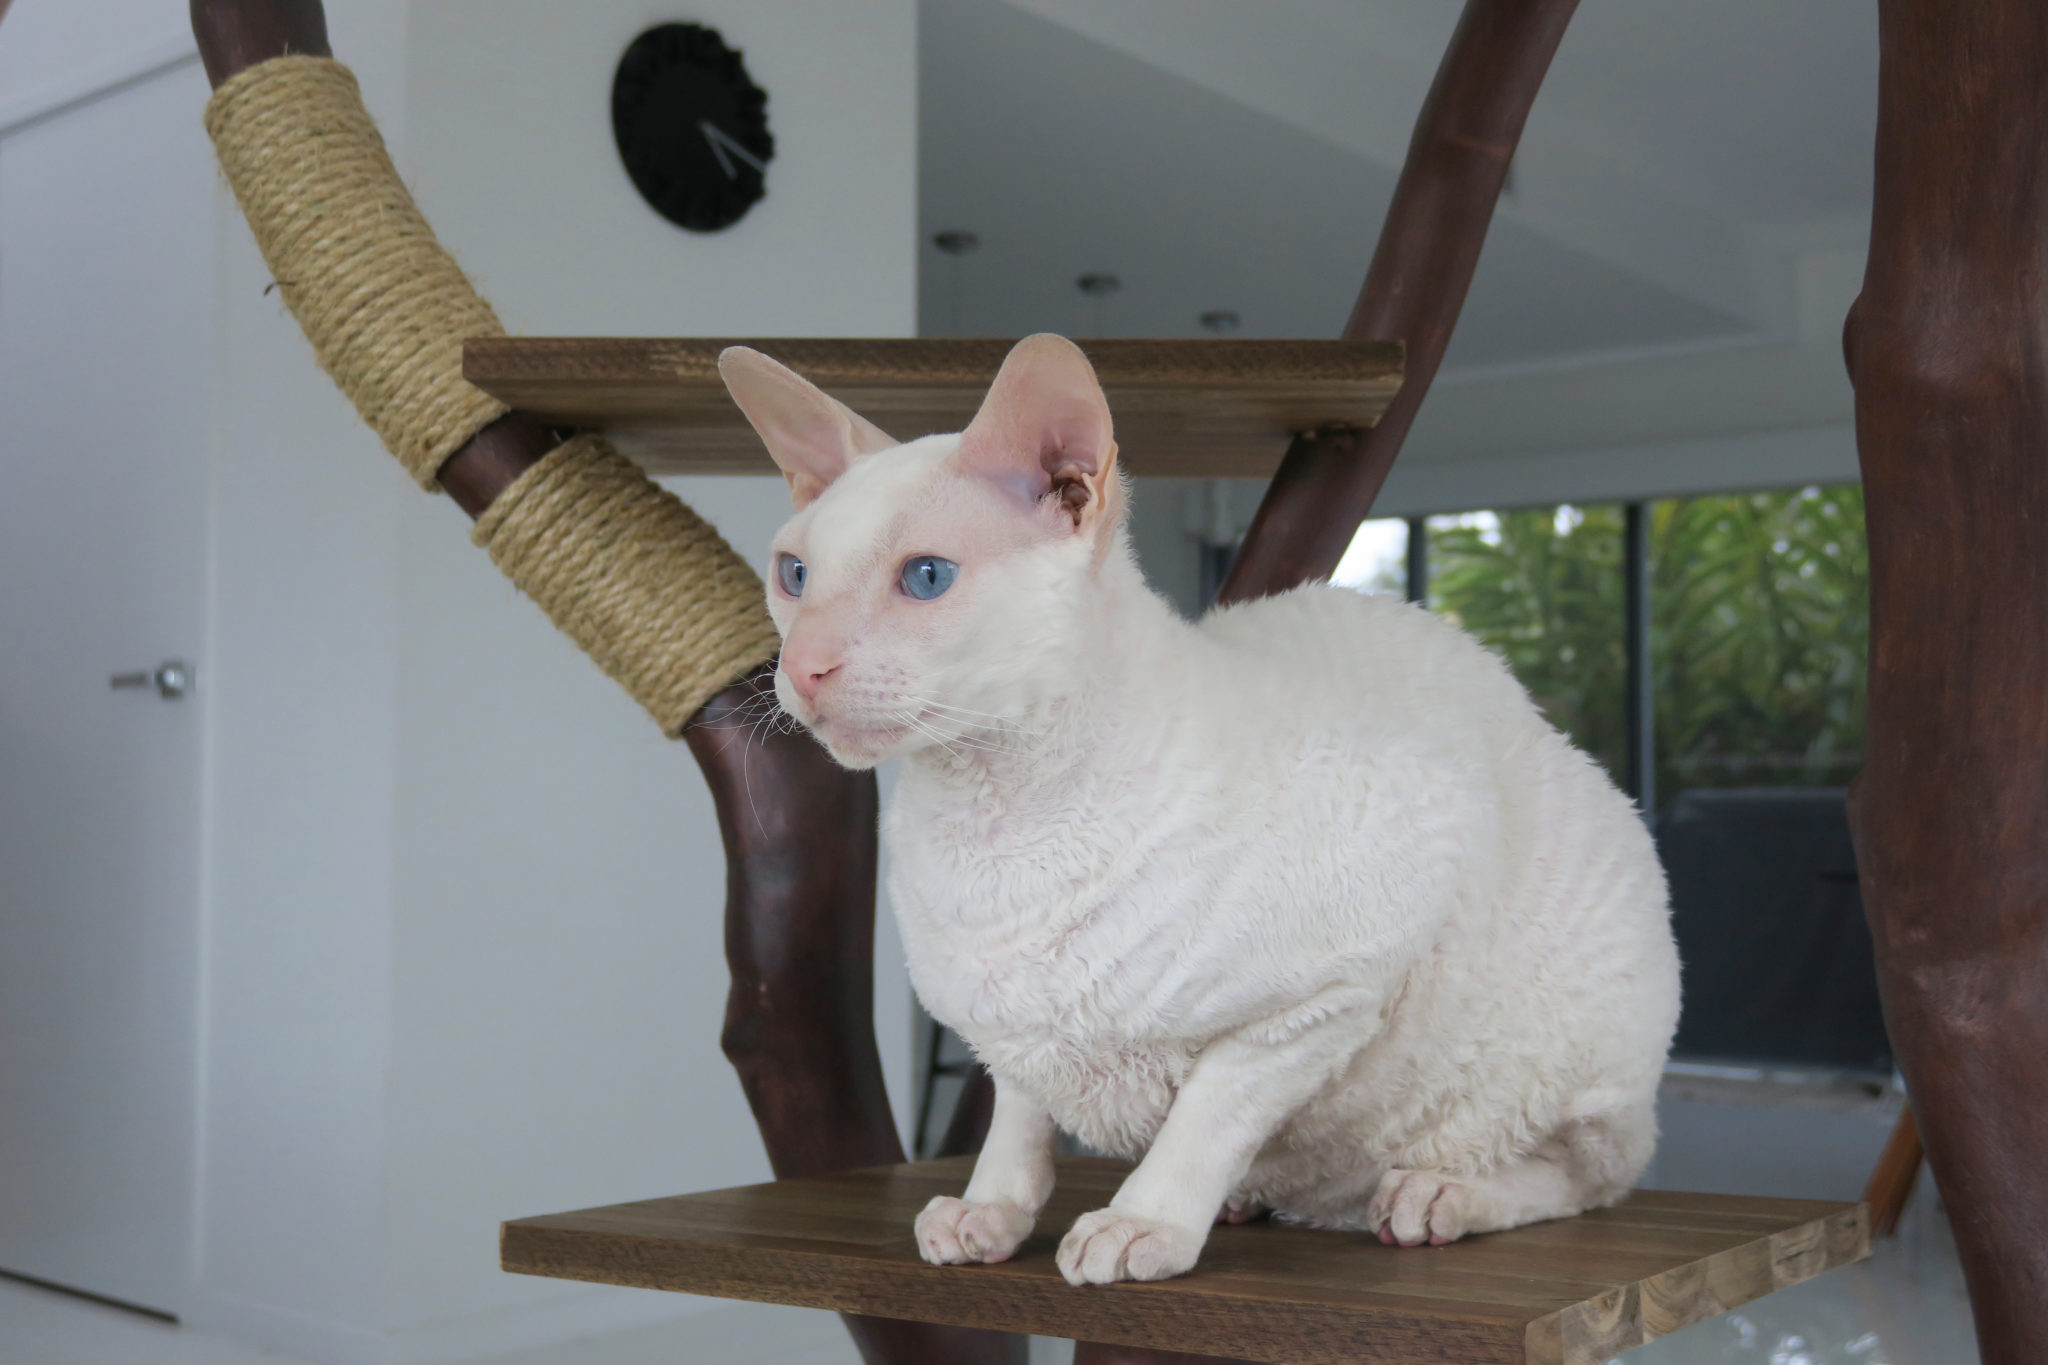 Gandalf the deaf adventure cat perched in cat tree